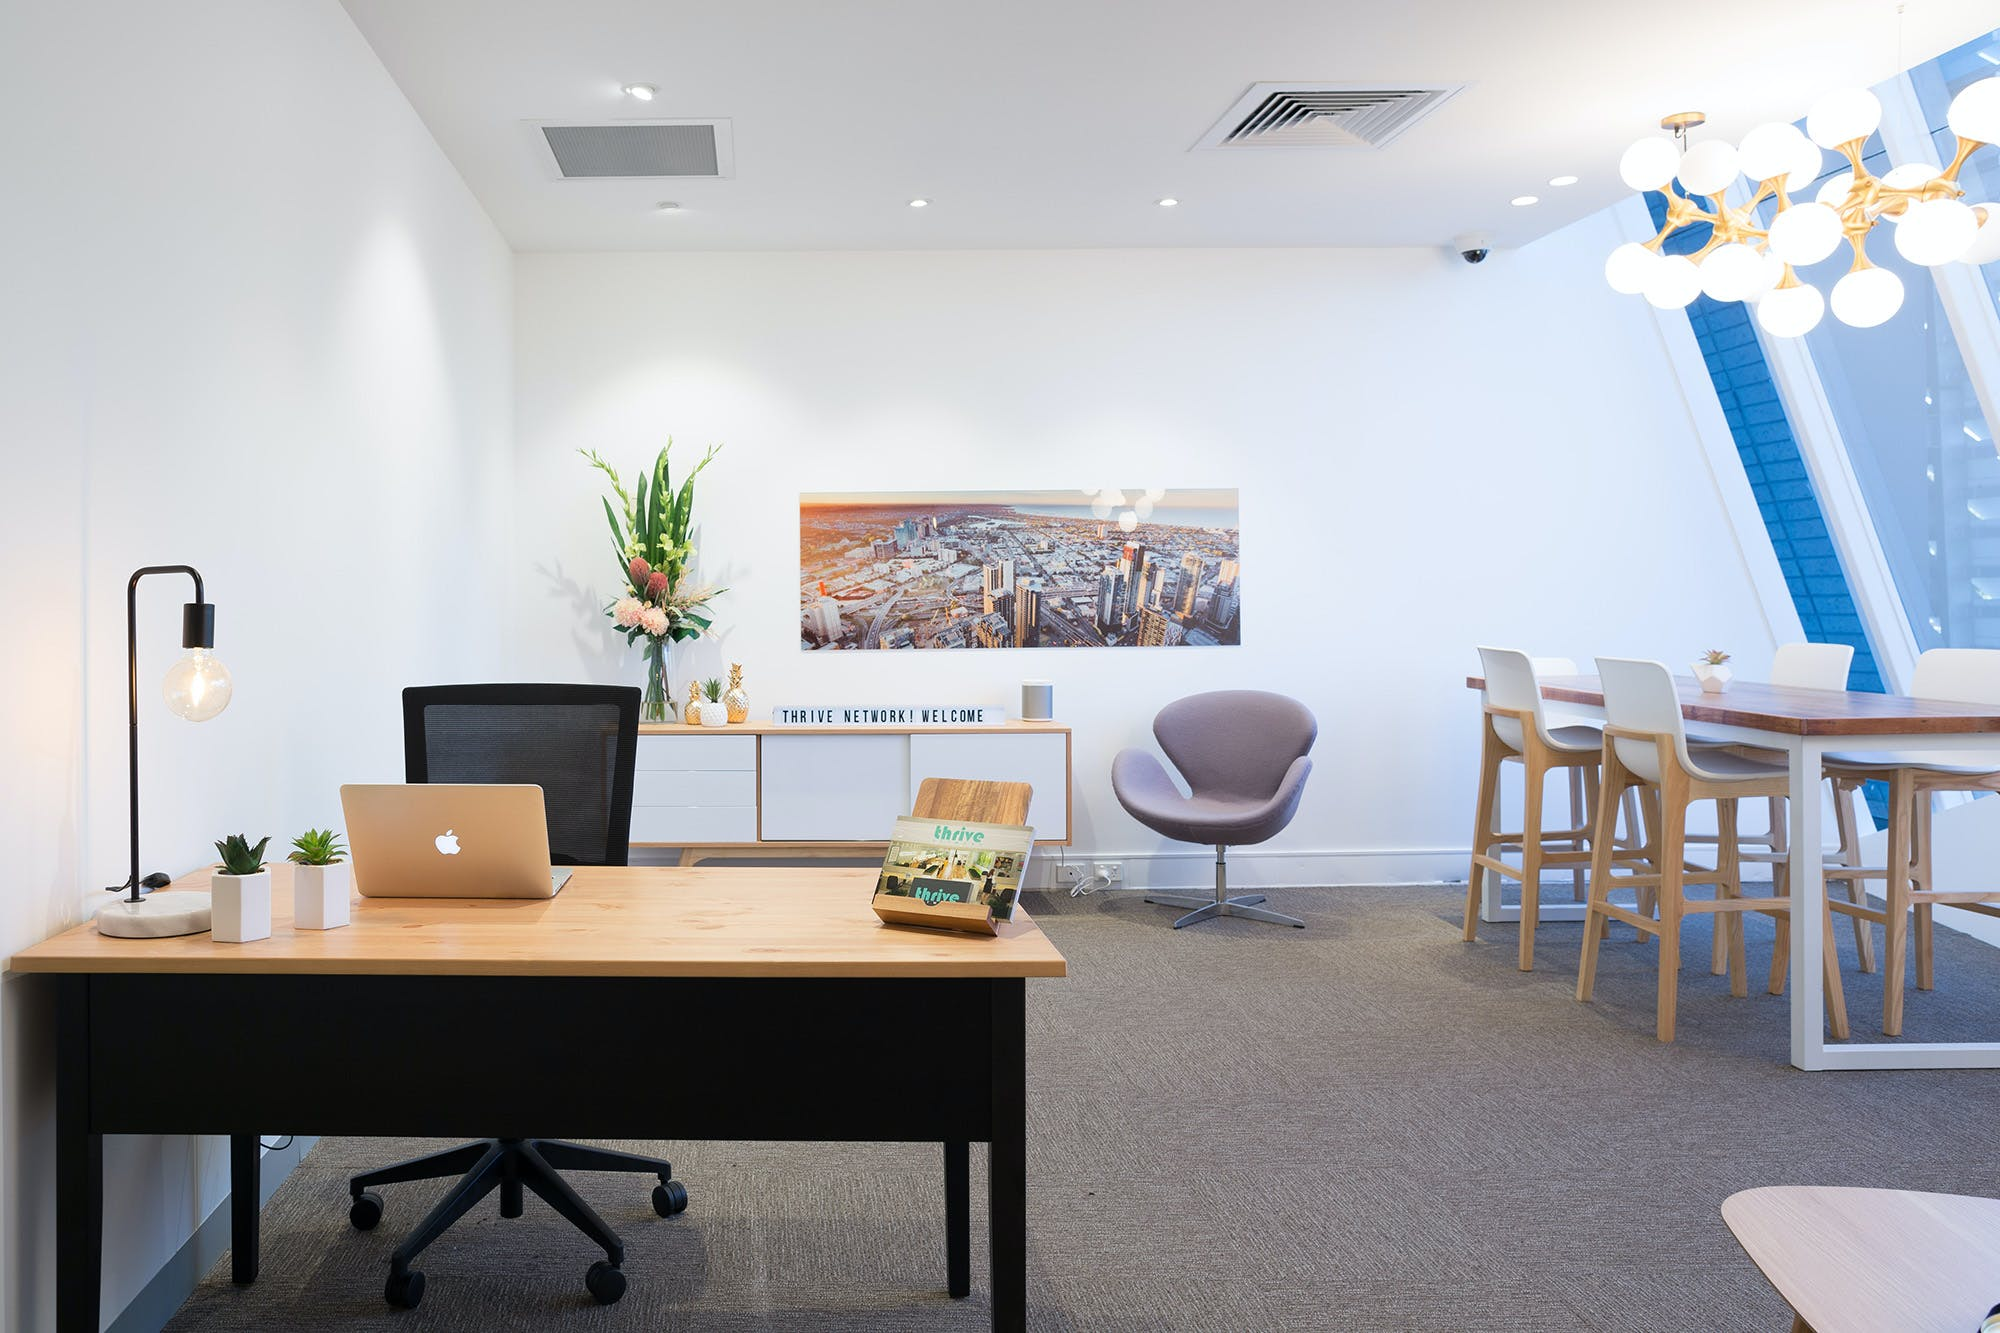 The Jackie Chan, meeting room at The Thrive Network, image 3